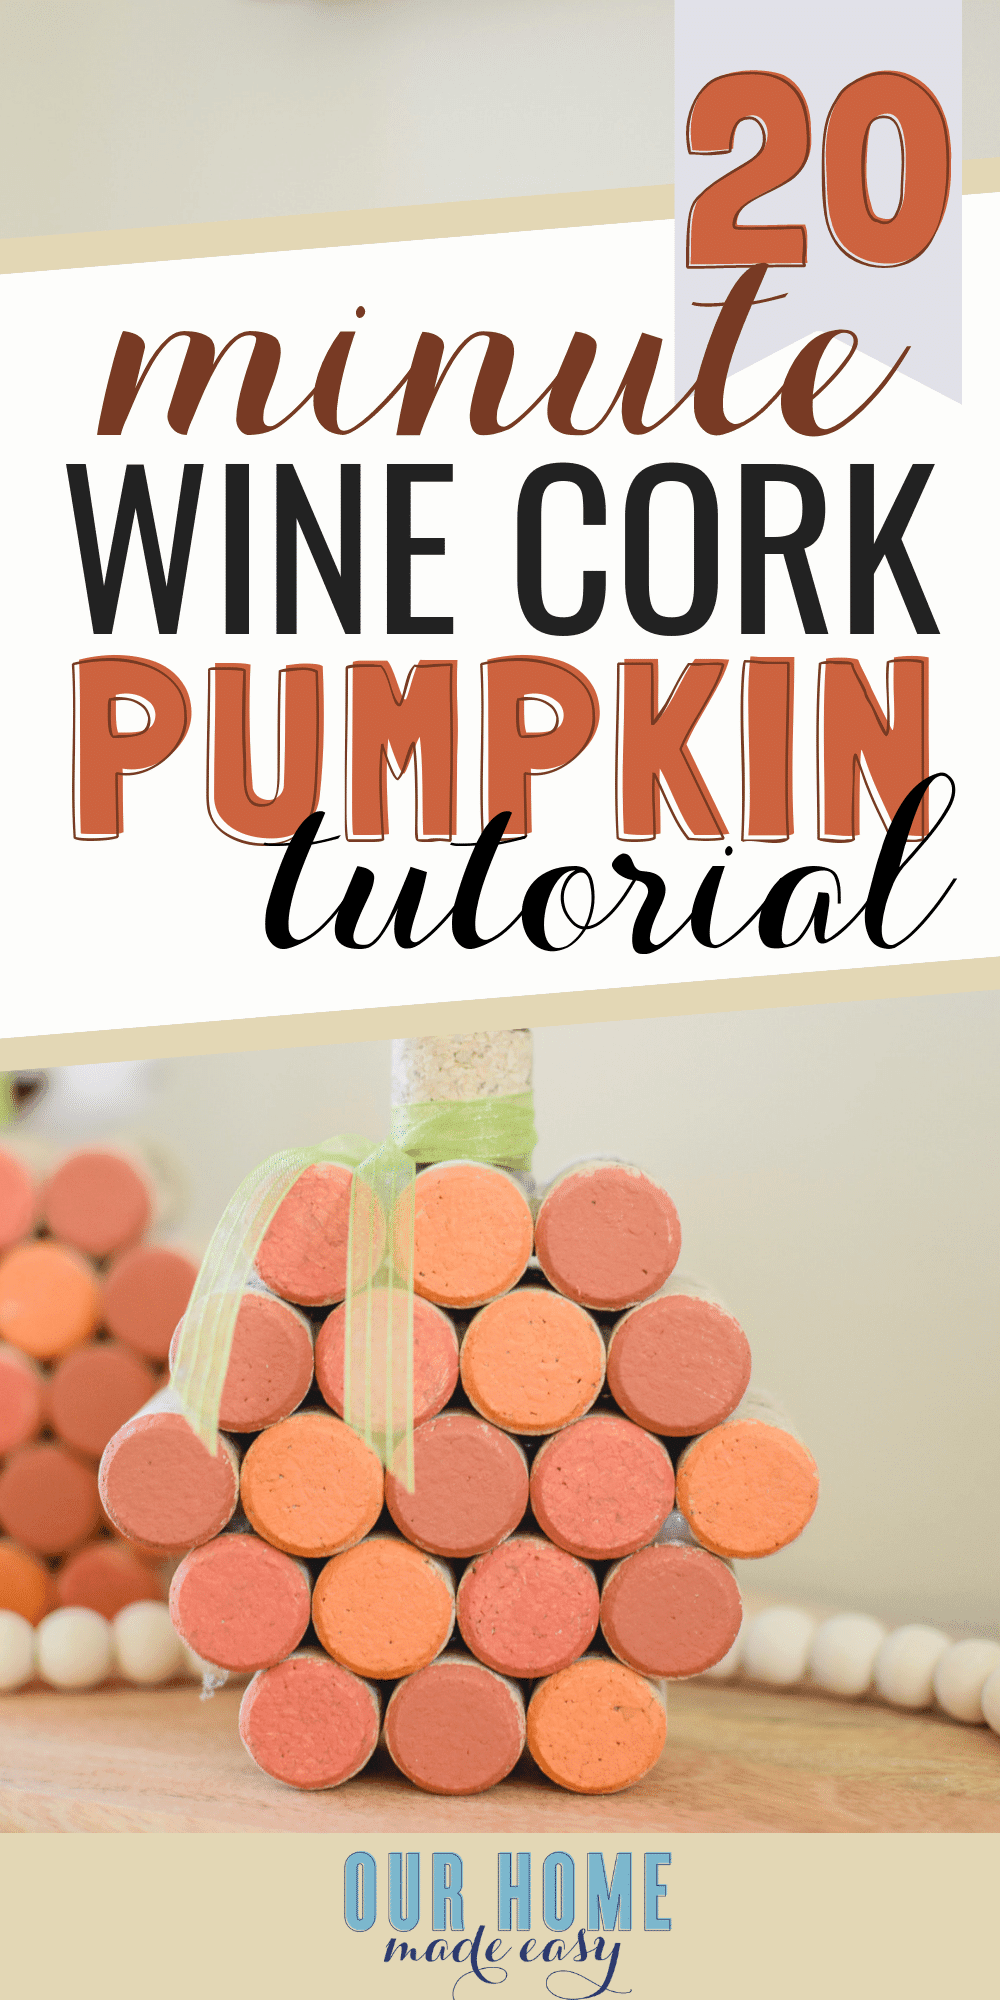 These cork pumpkins are super quick & easy to make! They are a great project for groups and those looking for budget fall decor #pumpkins #cork #crafts #falldecor #fall